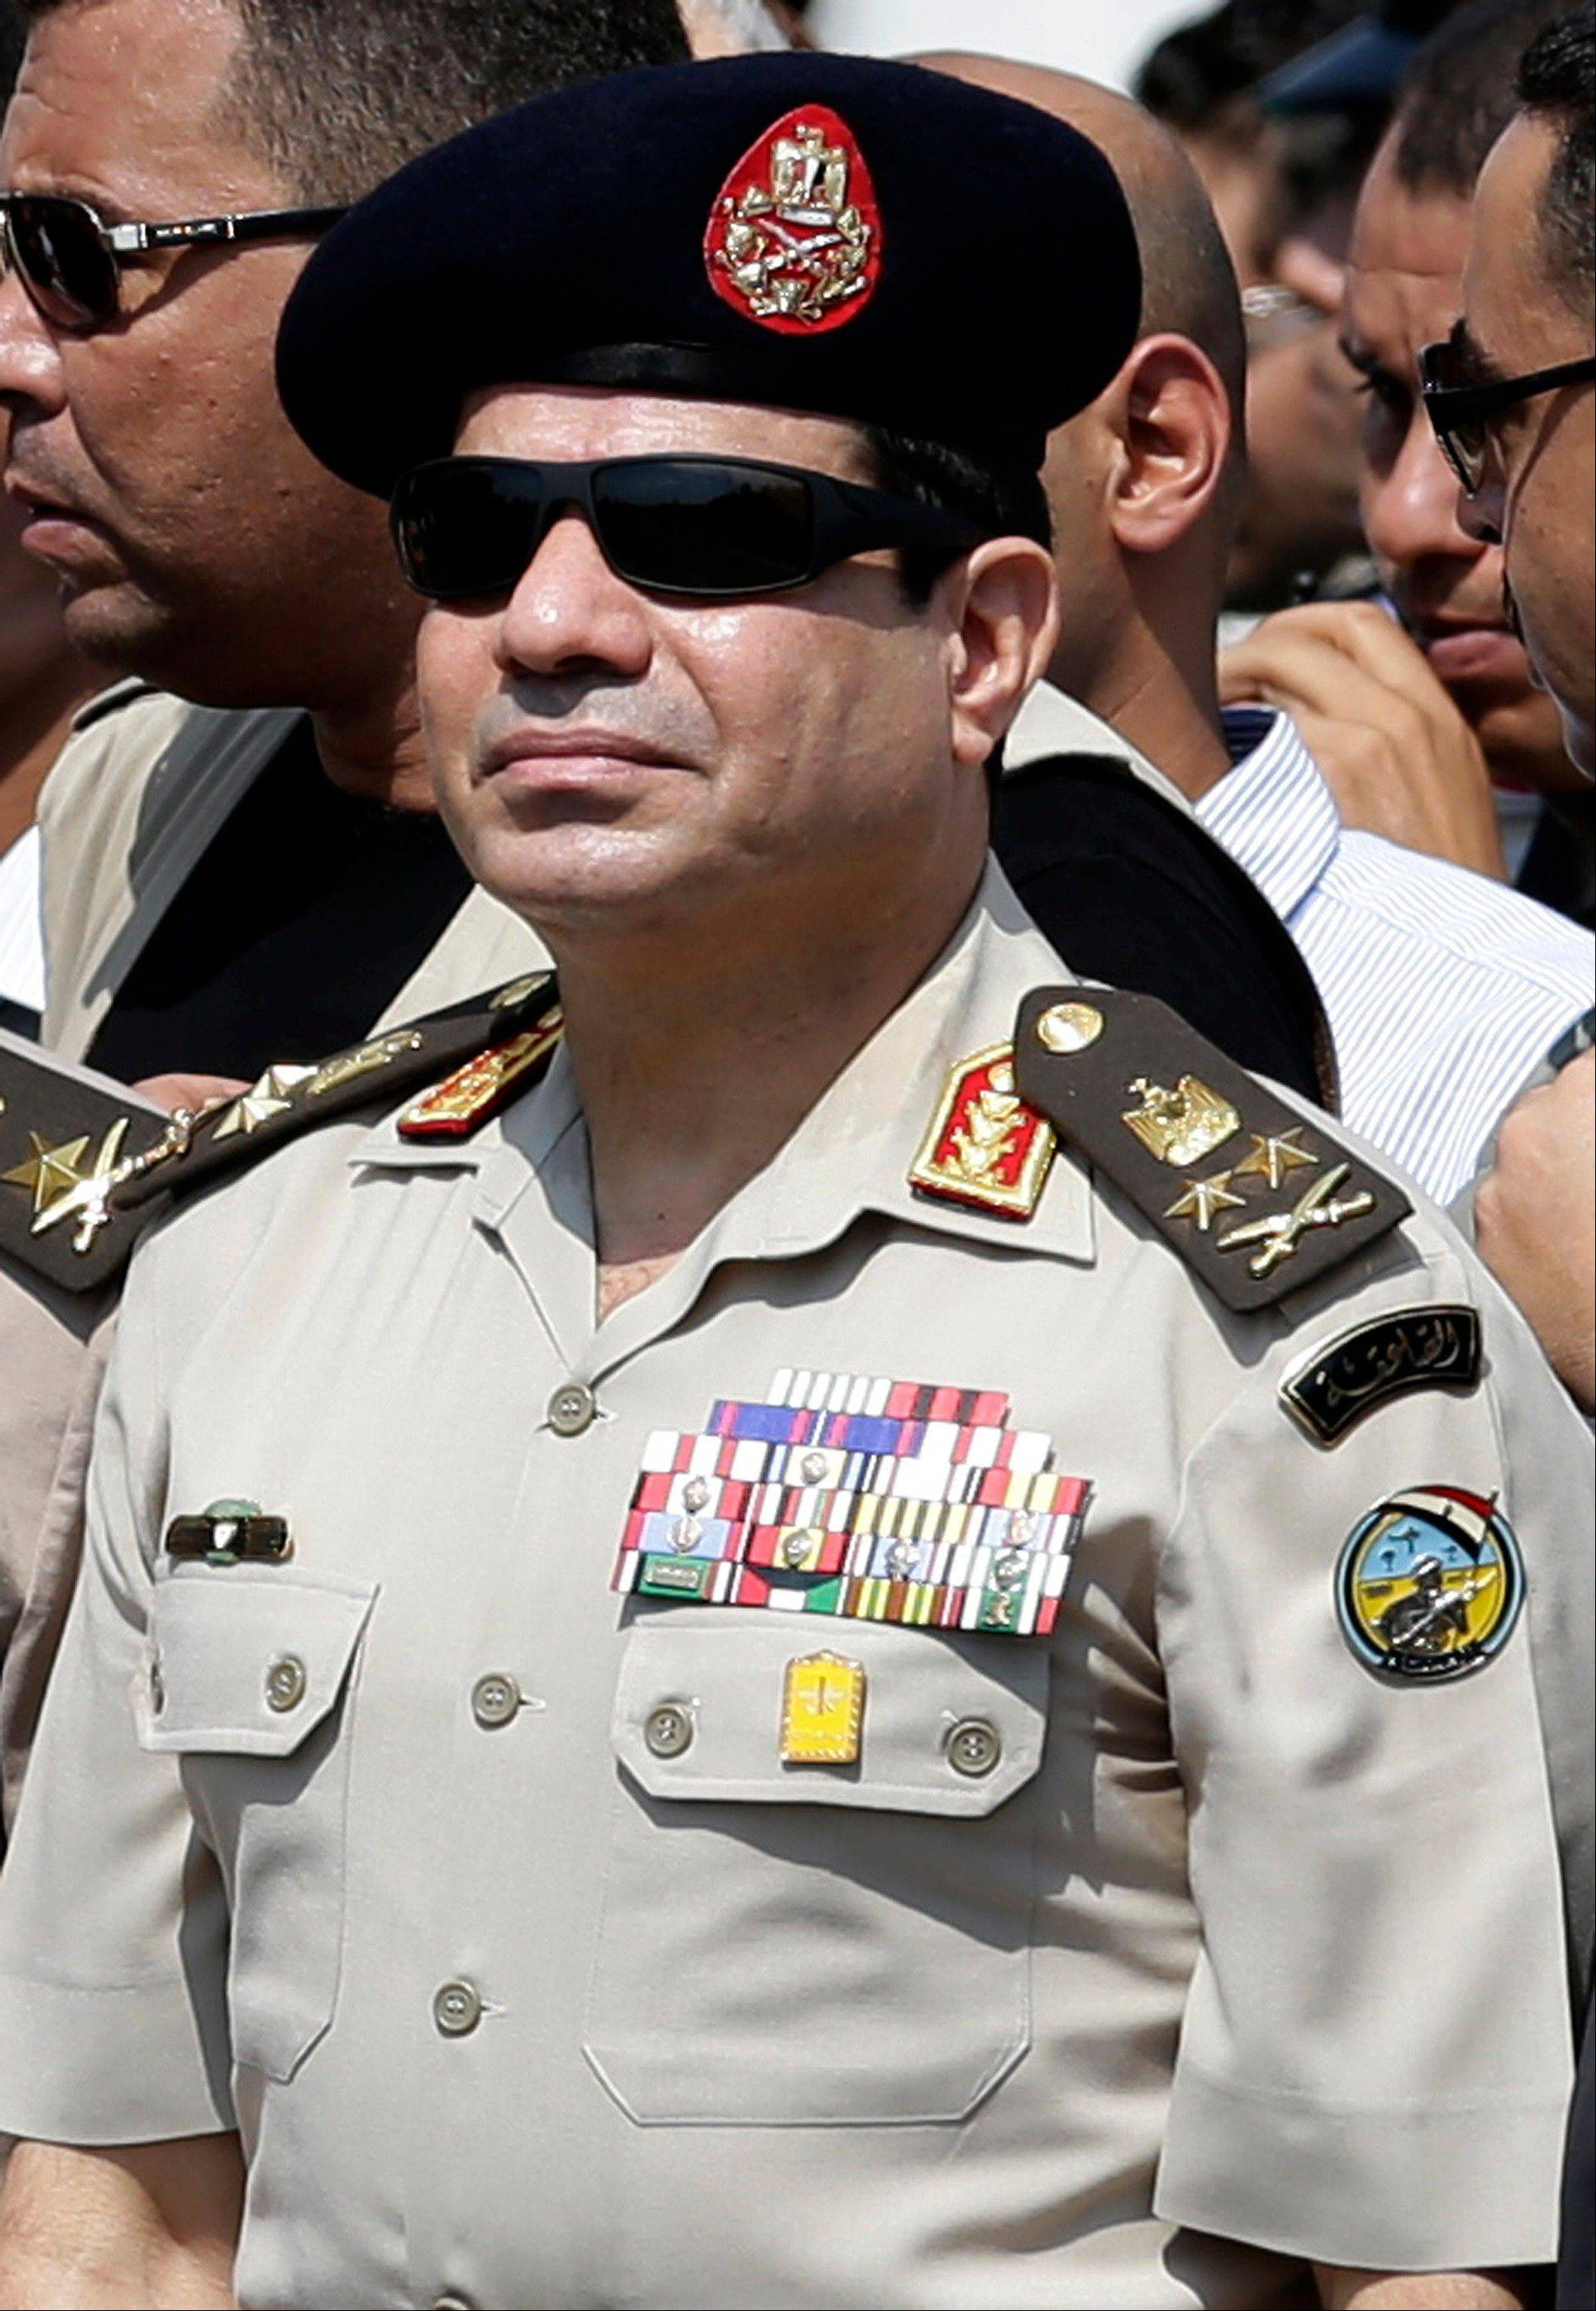 Egypt's Defense Minister Gen. Abdel-Fattah el-Sissi attends the funeral of Giza Police Gen. Nabil Farrag in Cairo, Egypt, Friday.